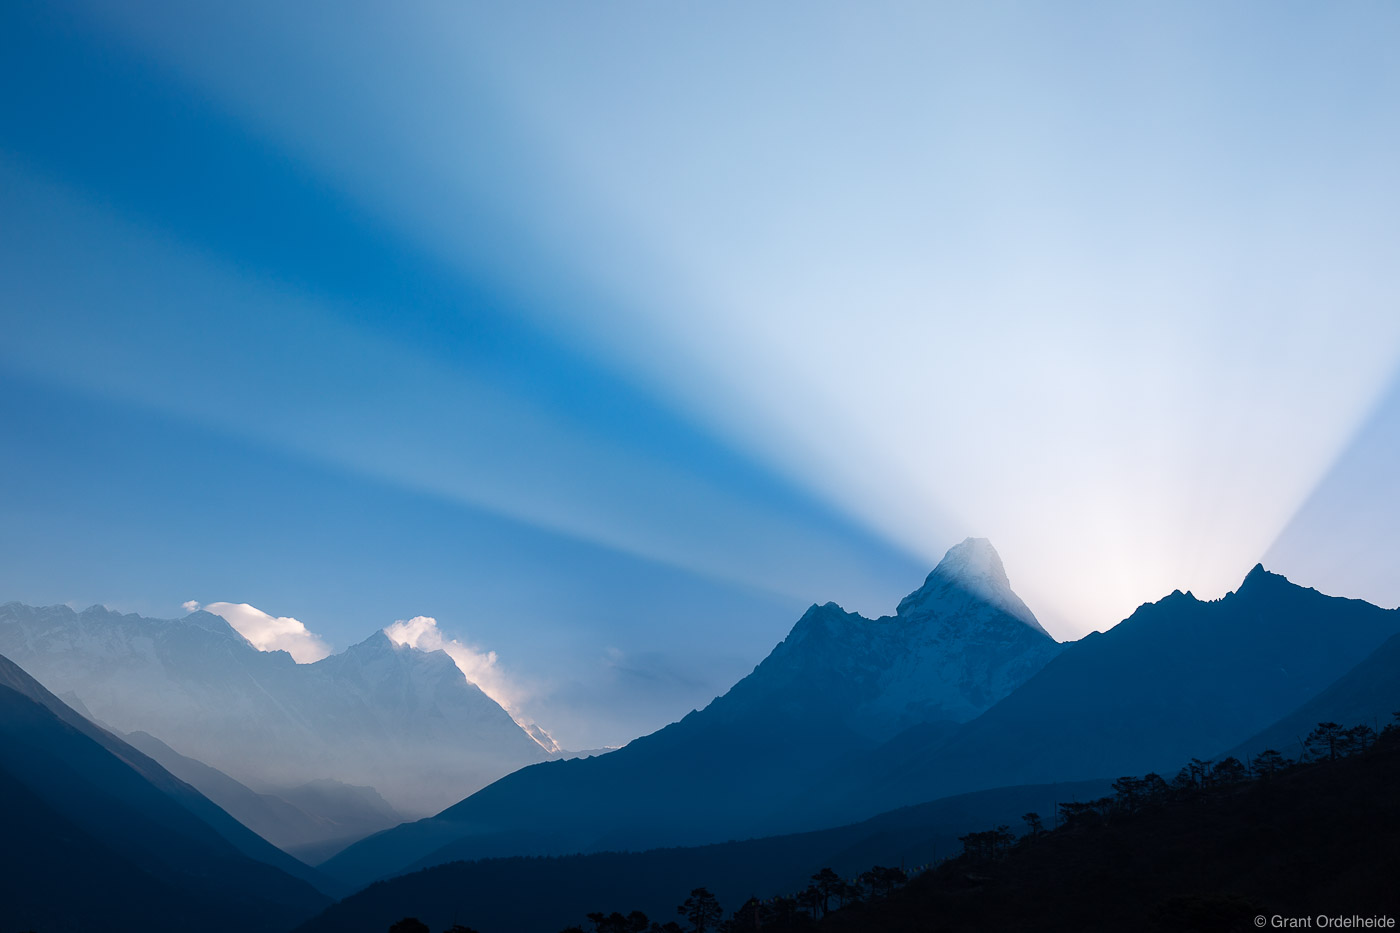 light, beams, ama dablam, godbeams, sagarmatha, national park, himalaya, nepal, everest, lhotse, village, tengboche